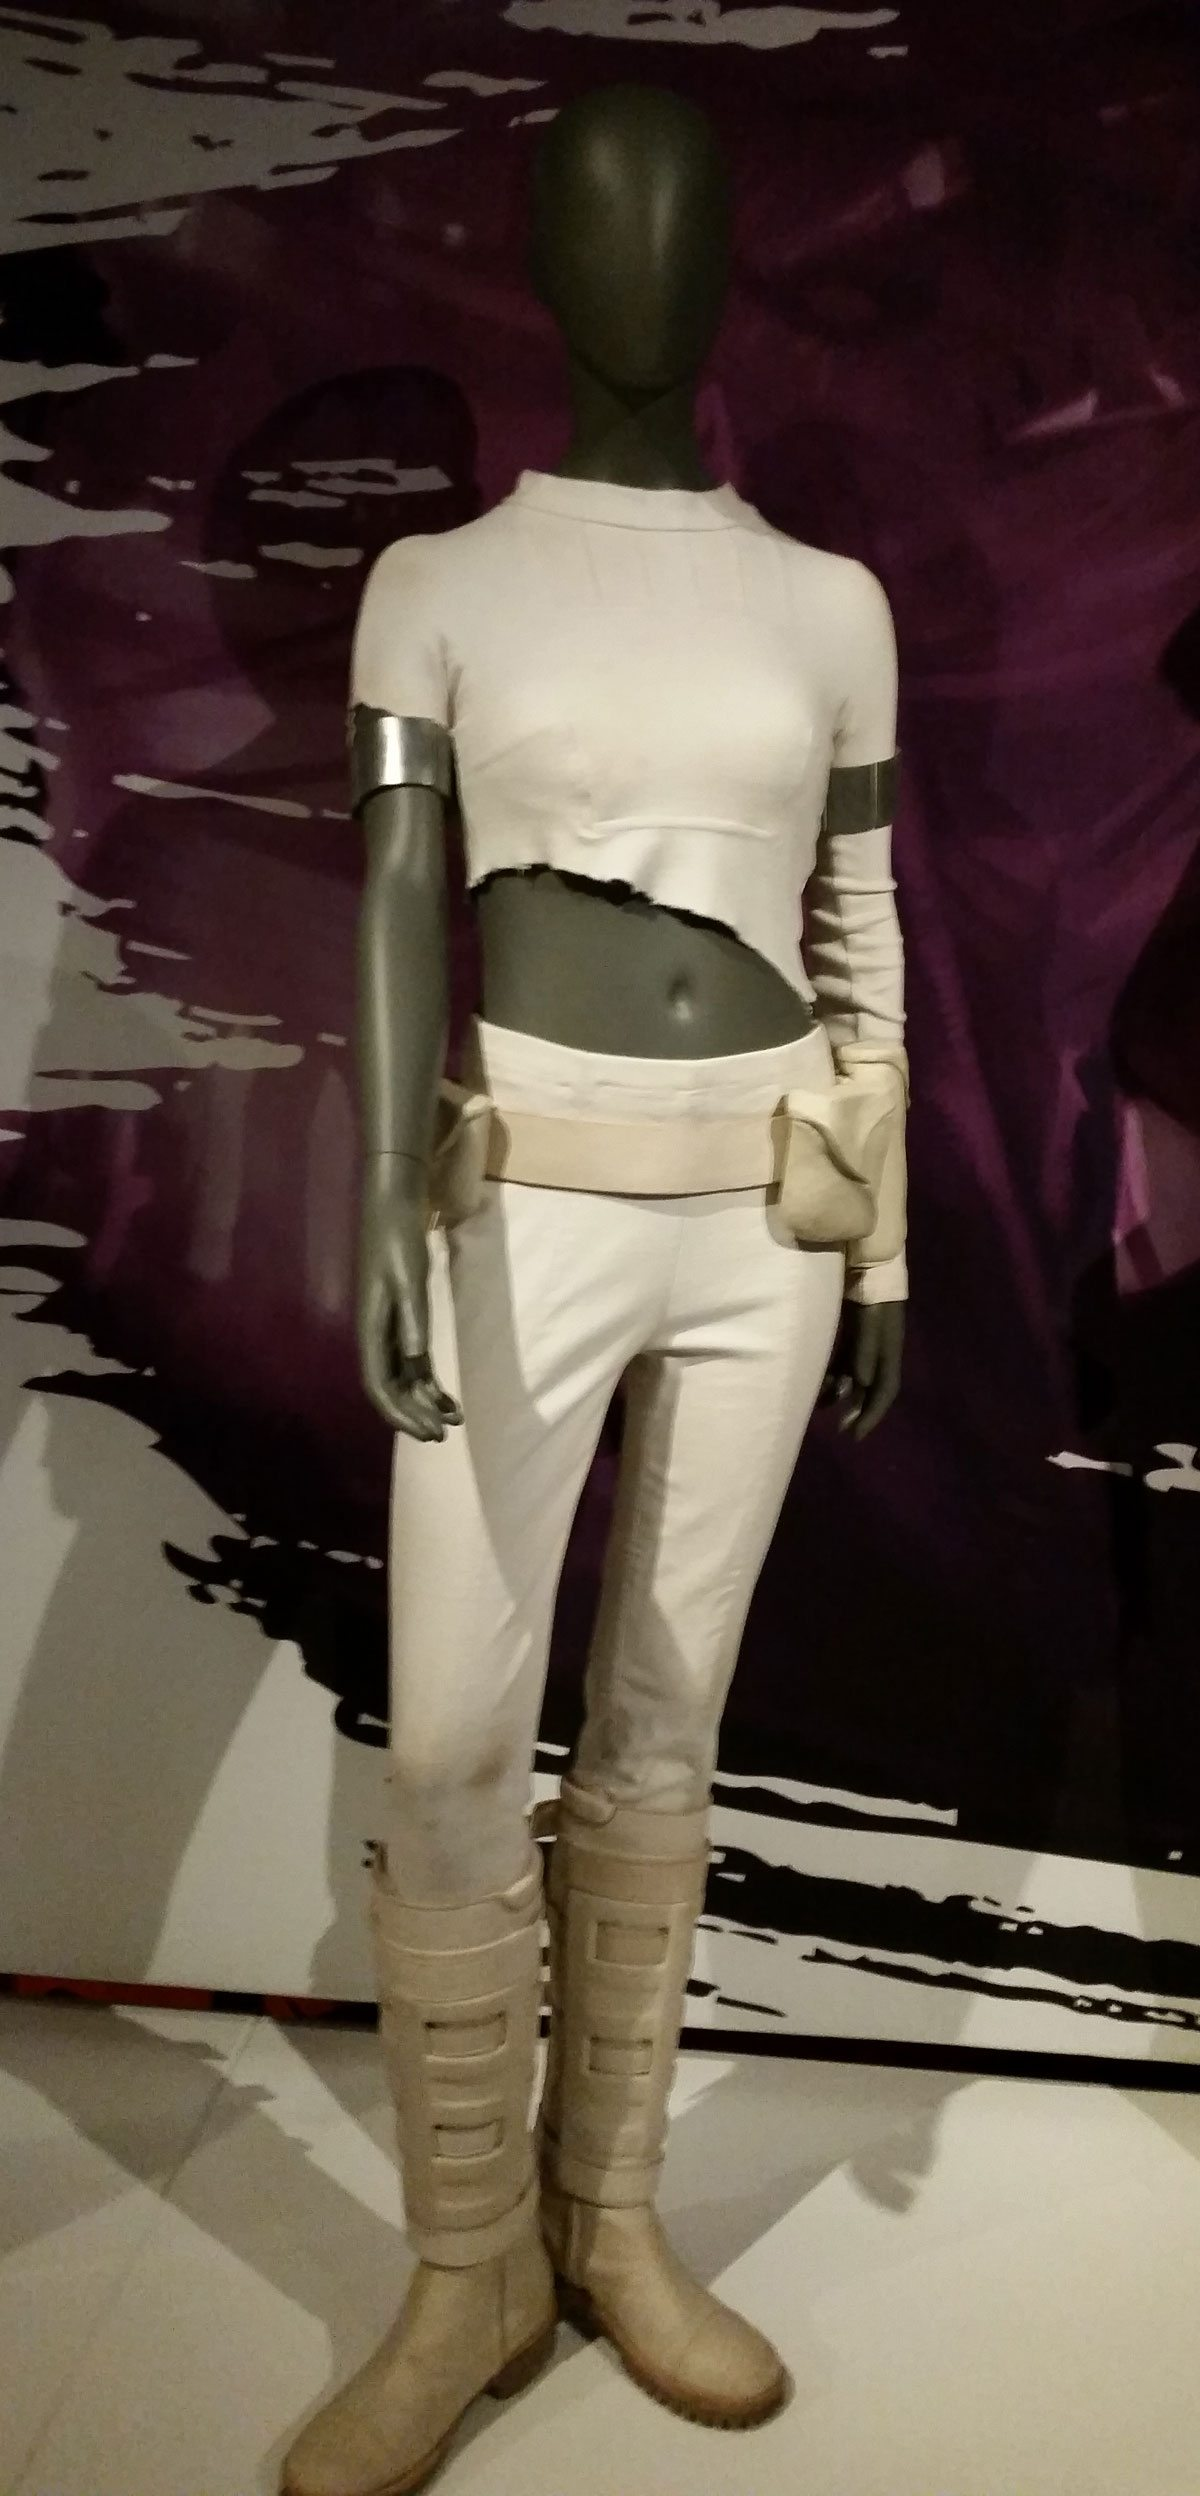 One of Amidala's more recognizable outfits, which she worn during the Battle of Geonosis. Photo by Rob Huddleston.